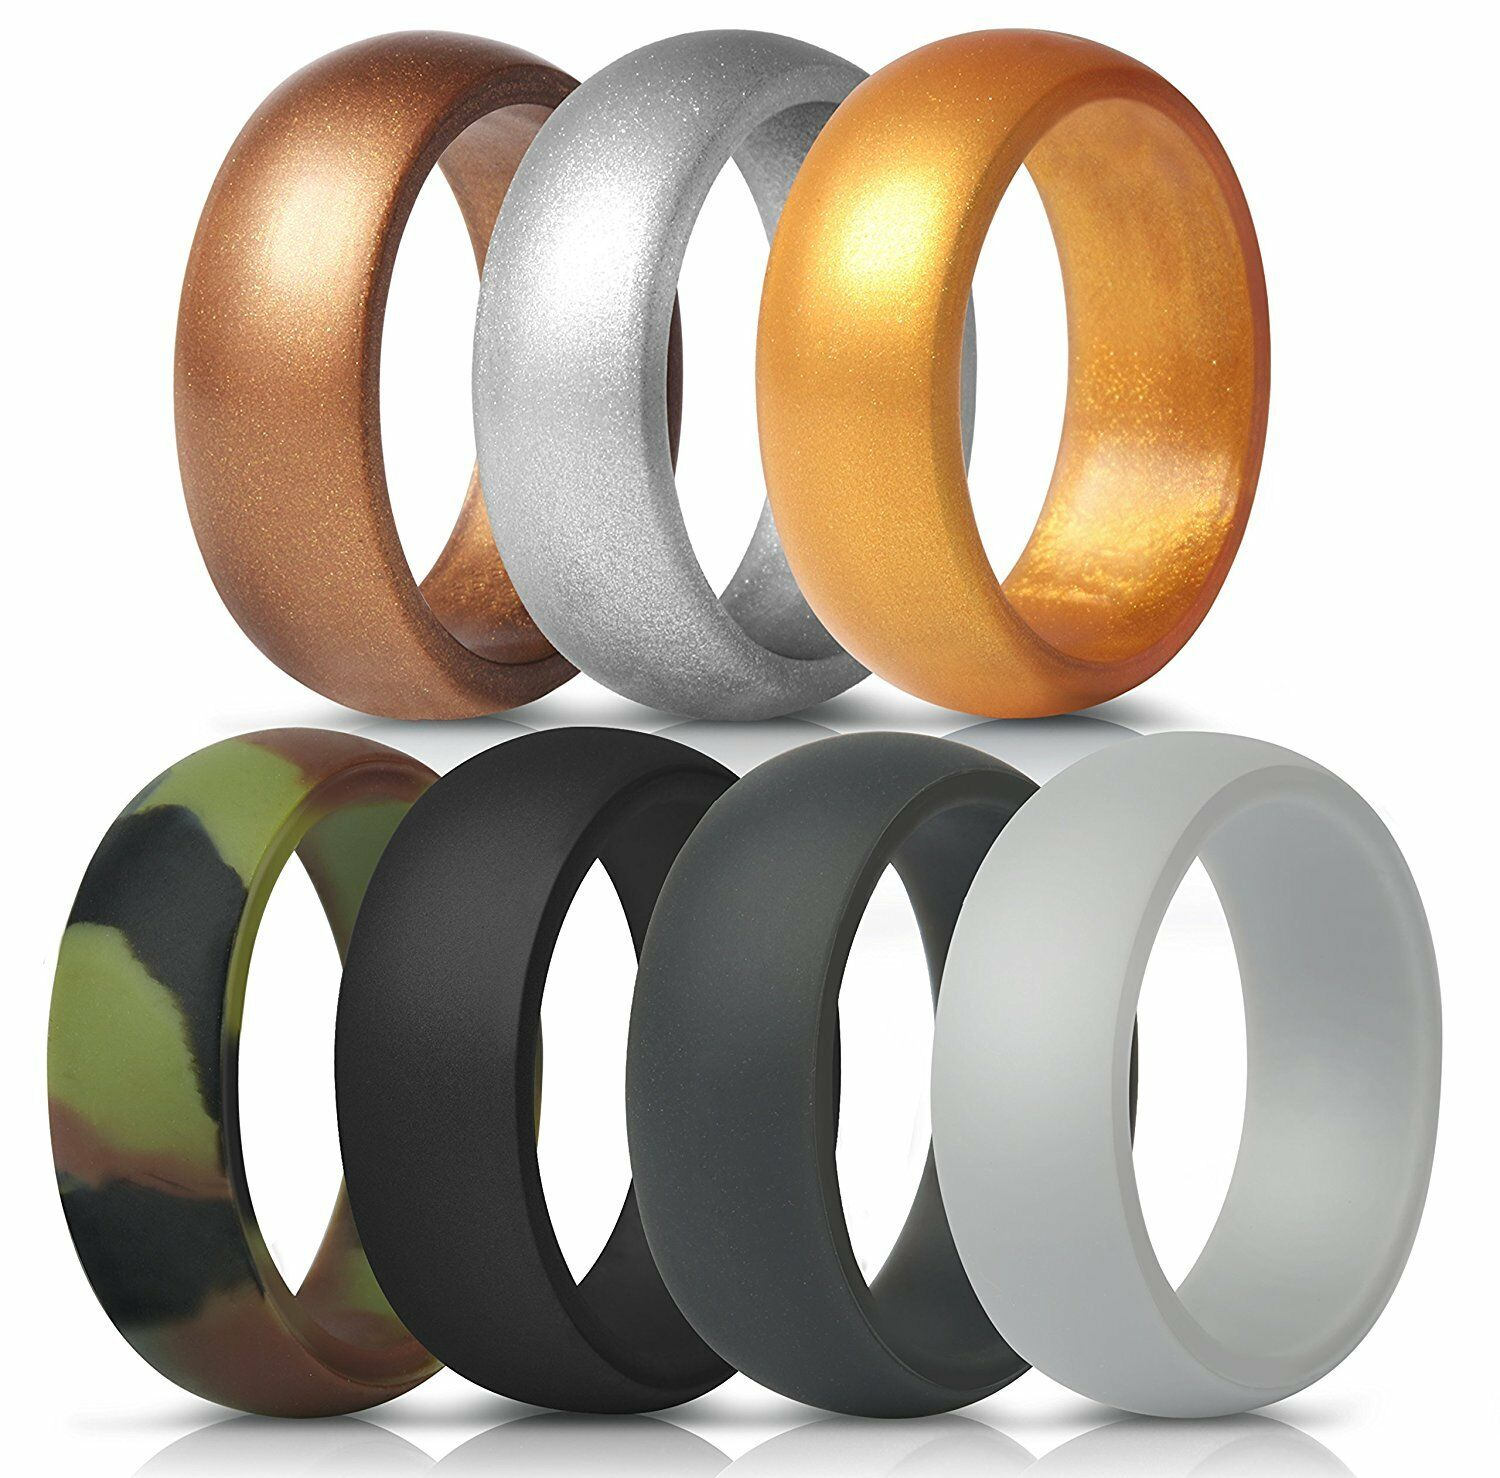 New ThunderFit Silicone Rings 7 Pack Flexible Wedding Bands